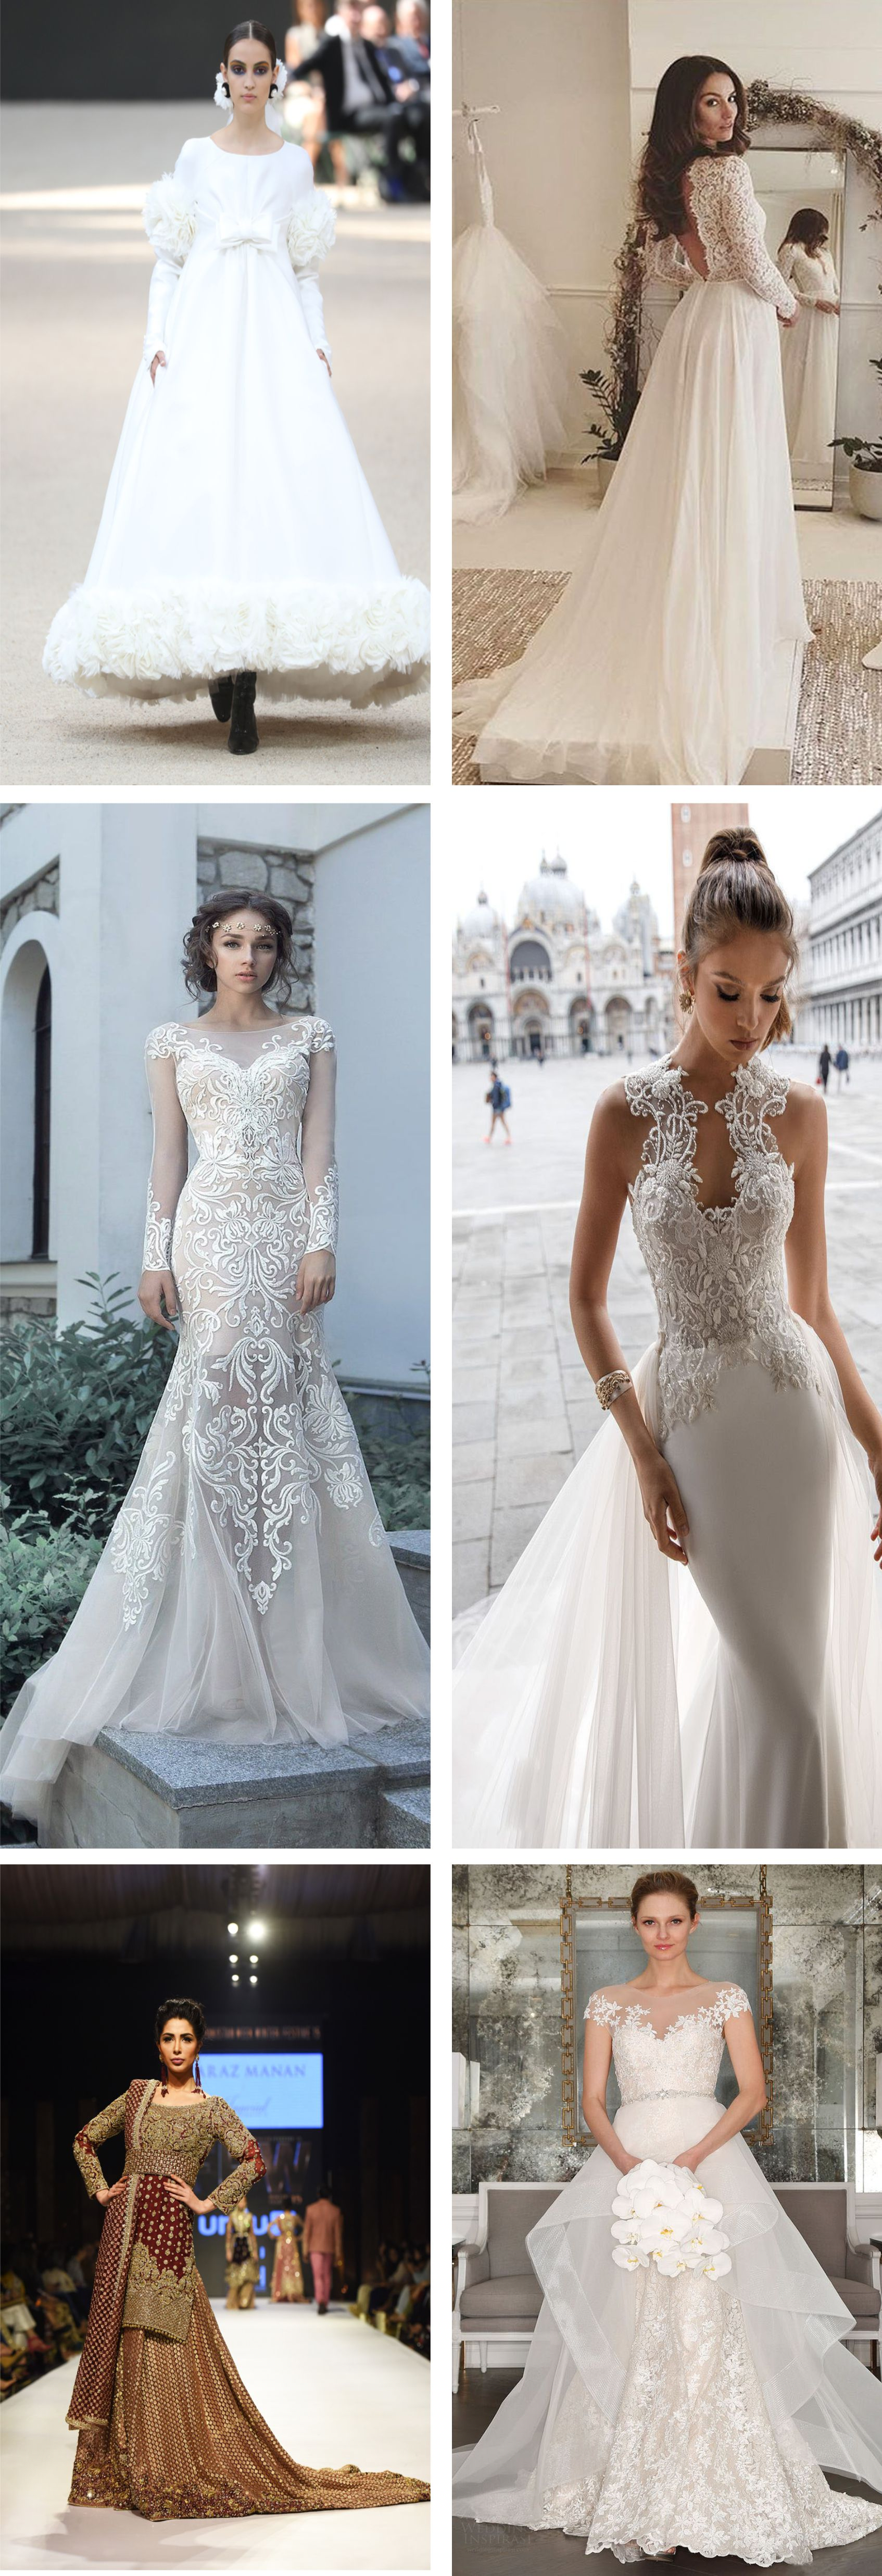 Beautiful bridal gowns for girls